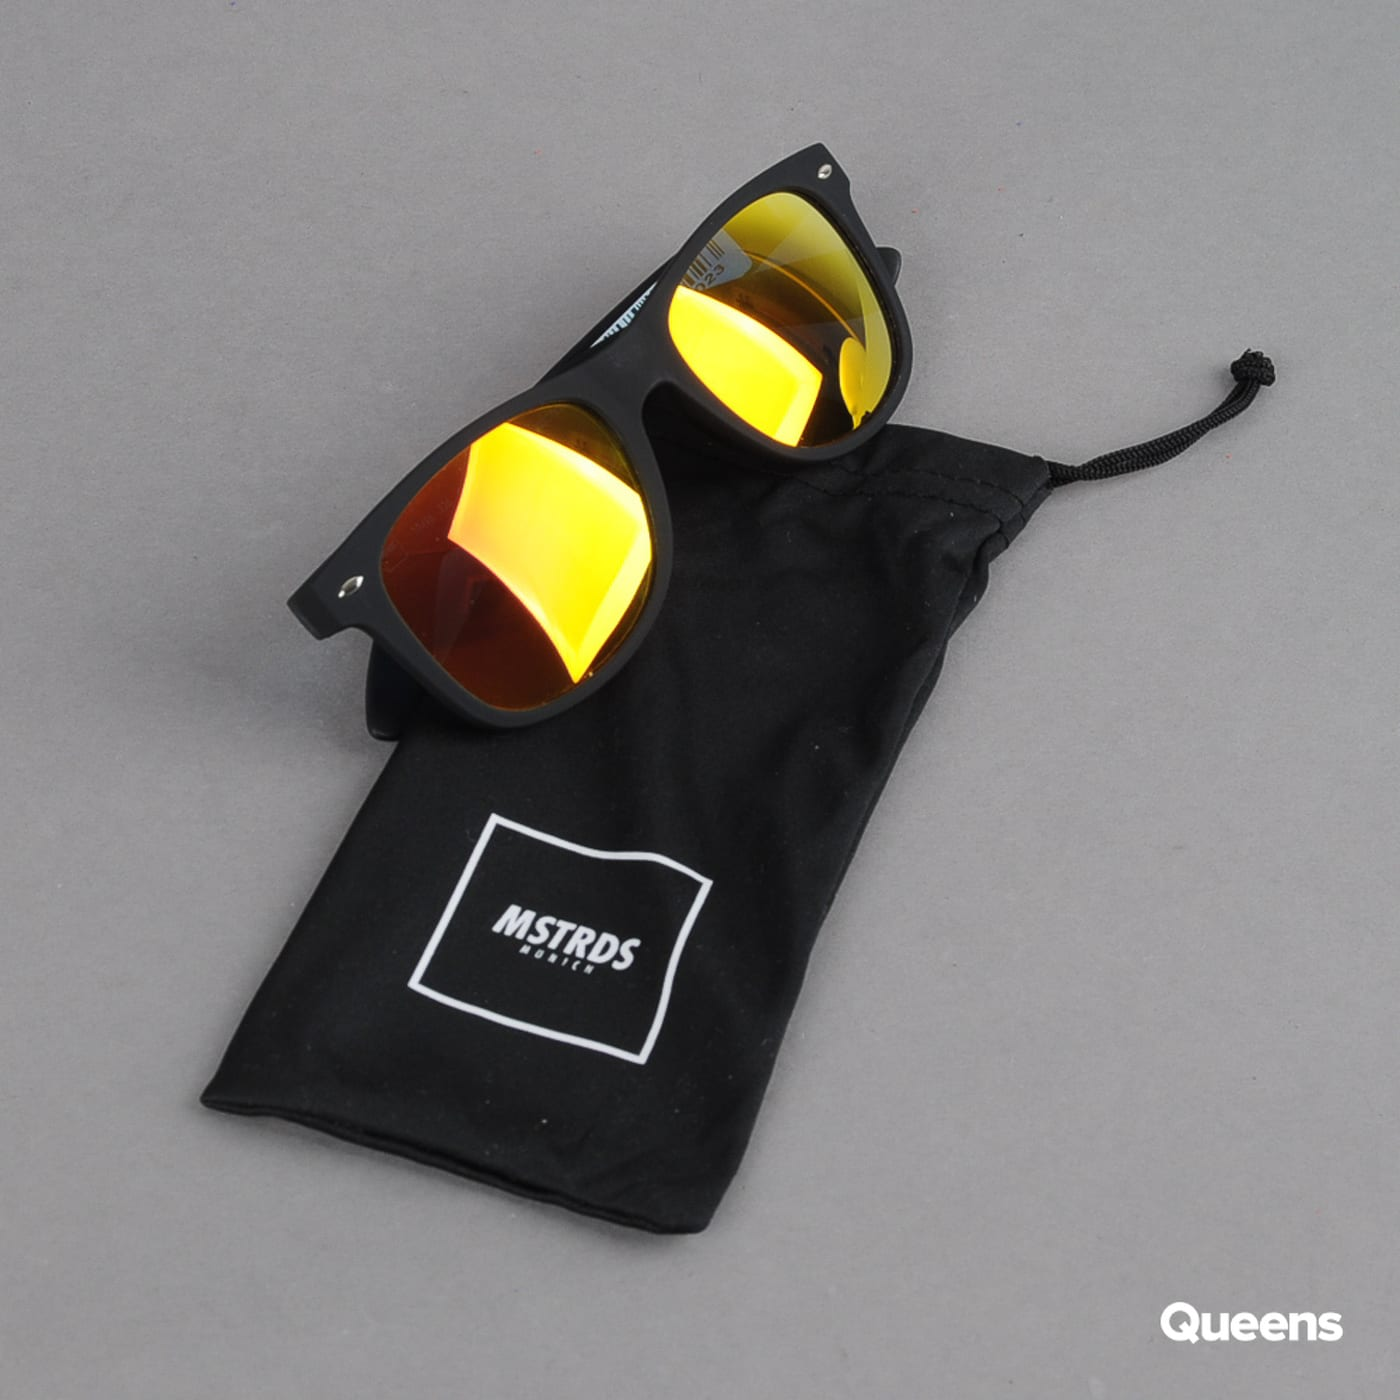 MD Sunglasses Likoma Mirror black / orange